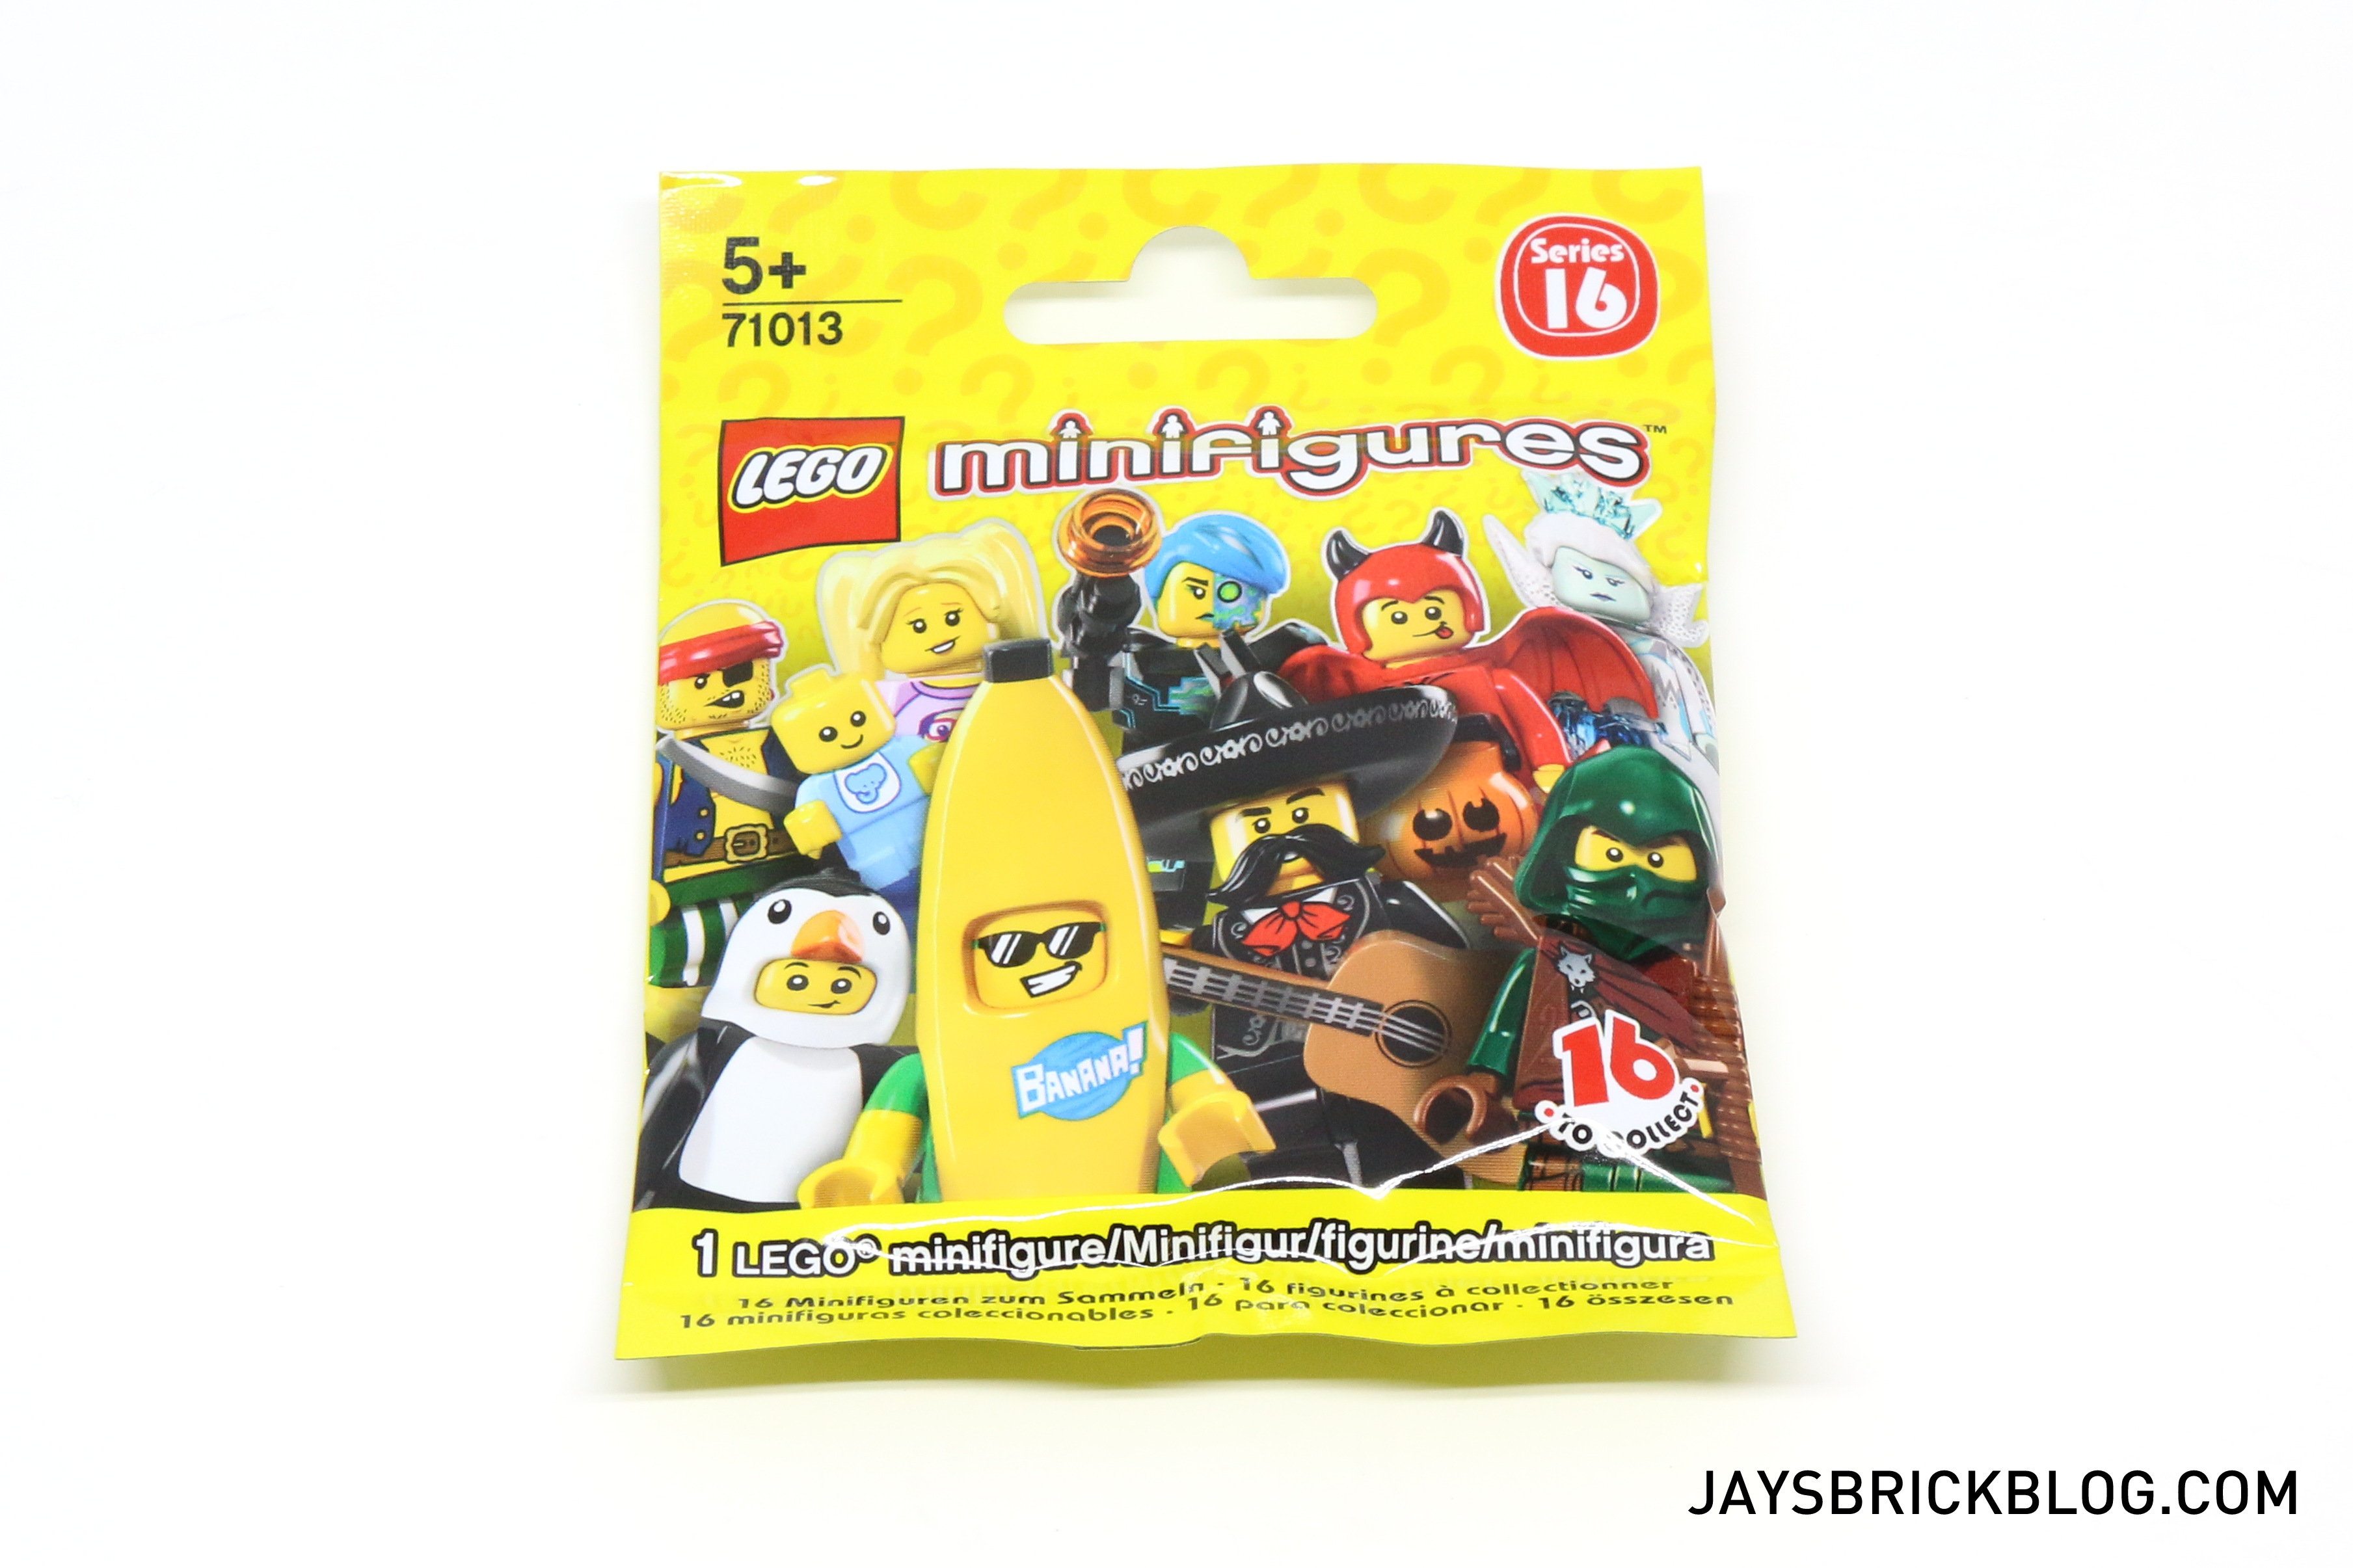 Review LEGO Minifigures Series 16